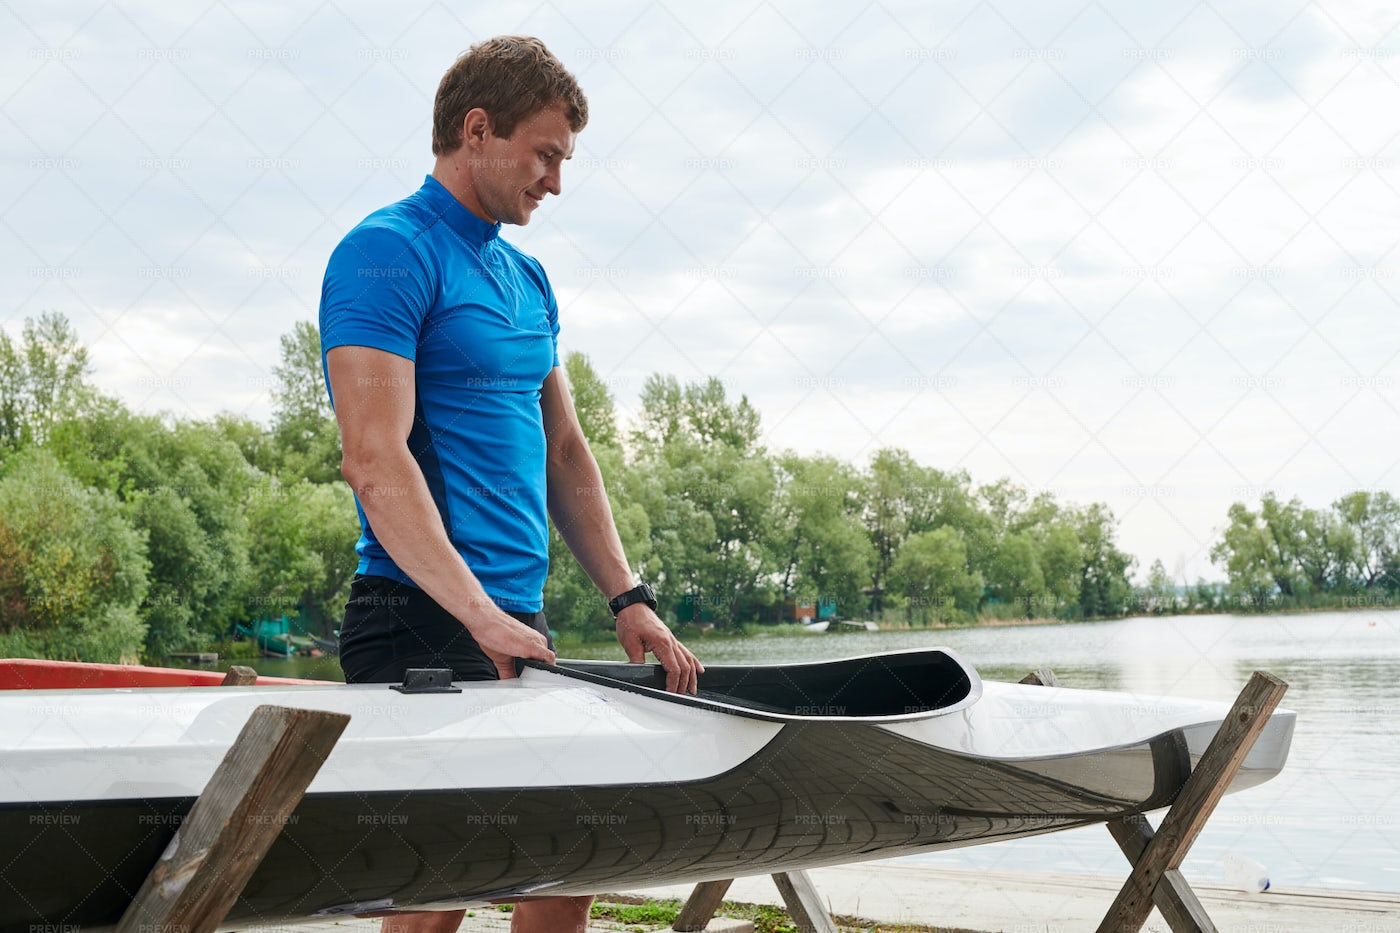 Kayaker Standing With Boat: Stock Photos